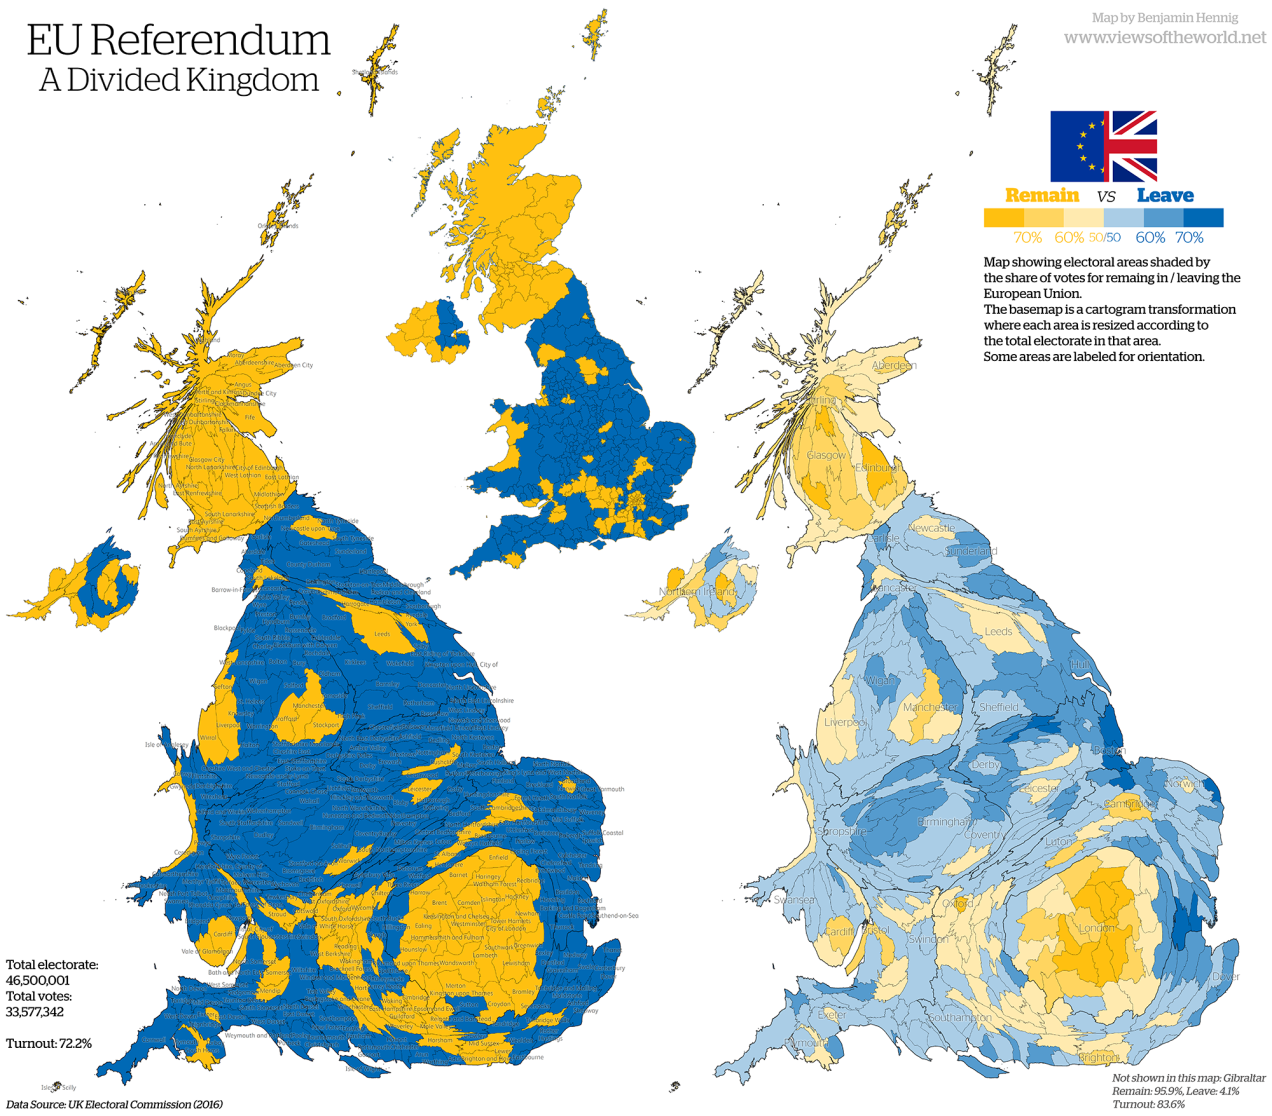 EU referendum results cartogram